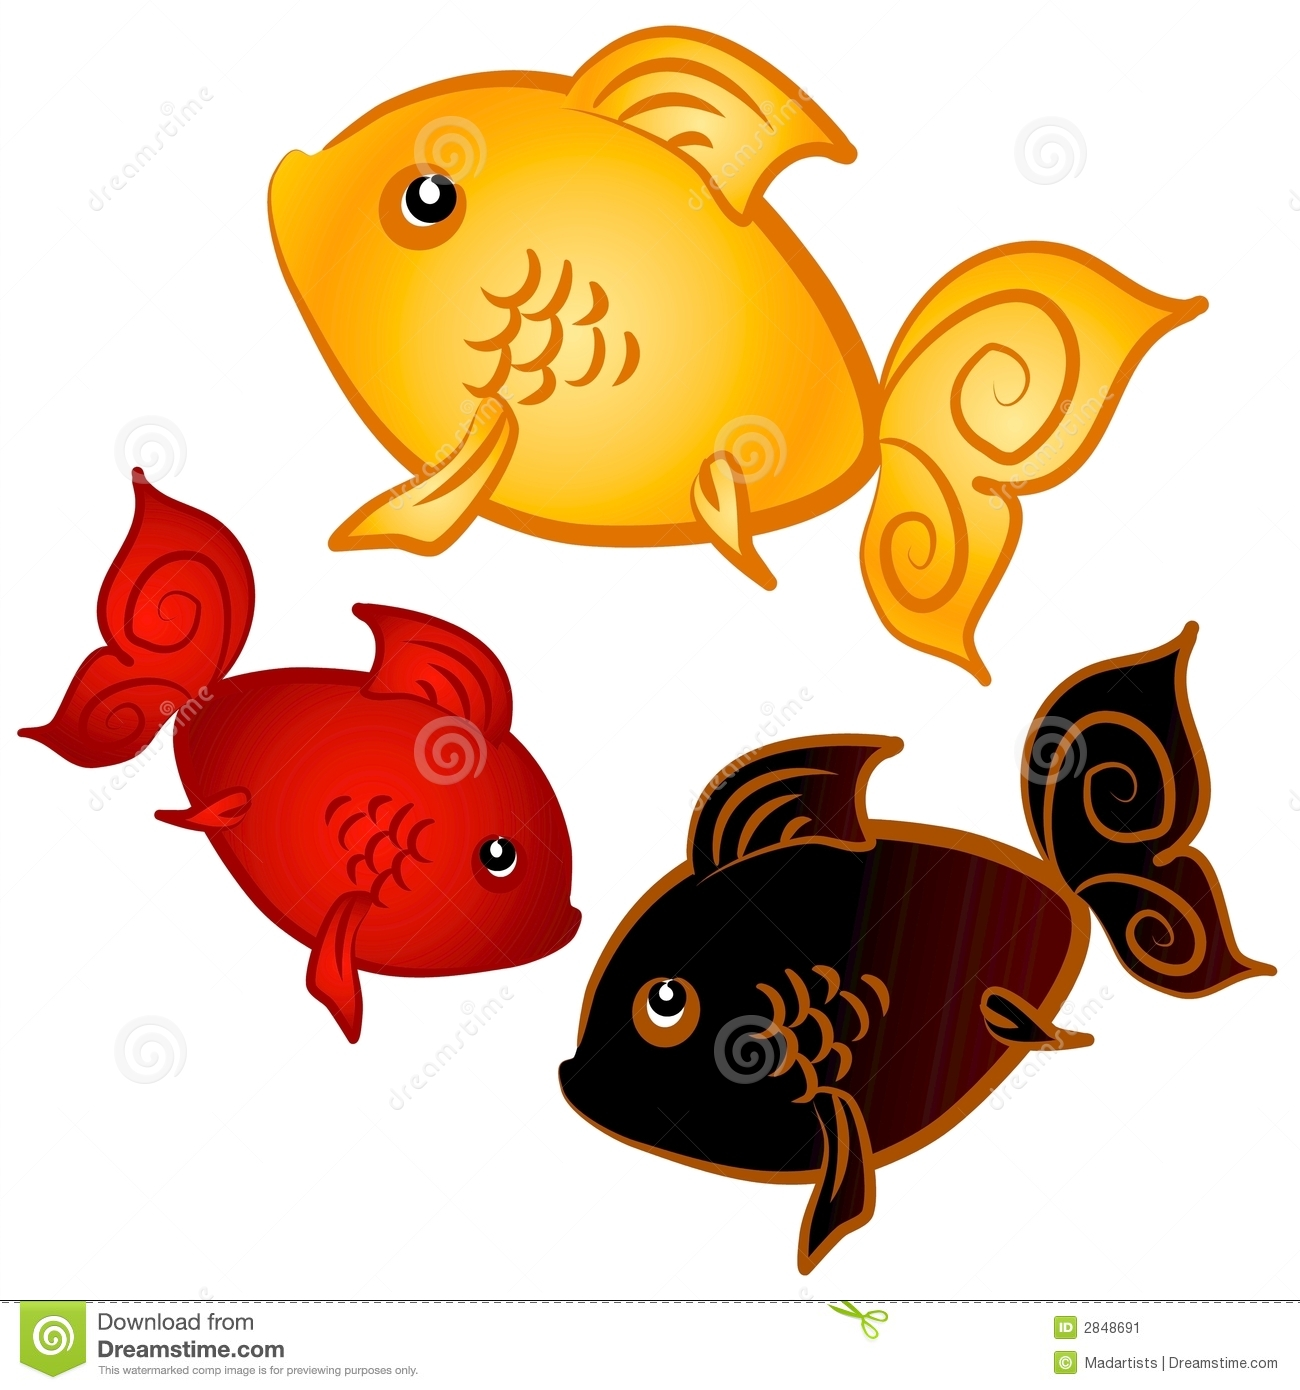 Gold Fish clipart #8, Download drawings